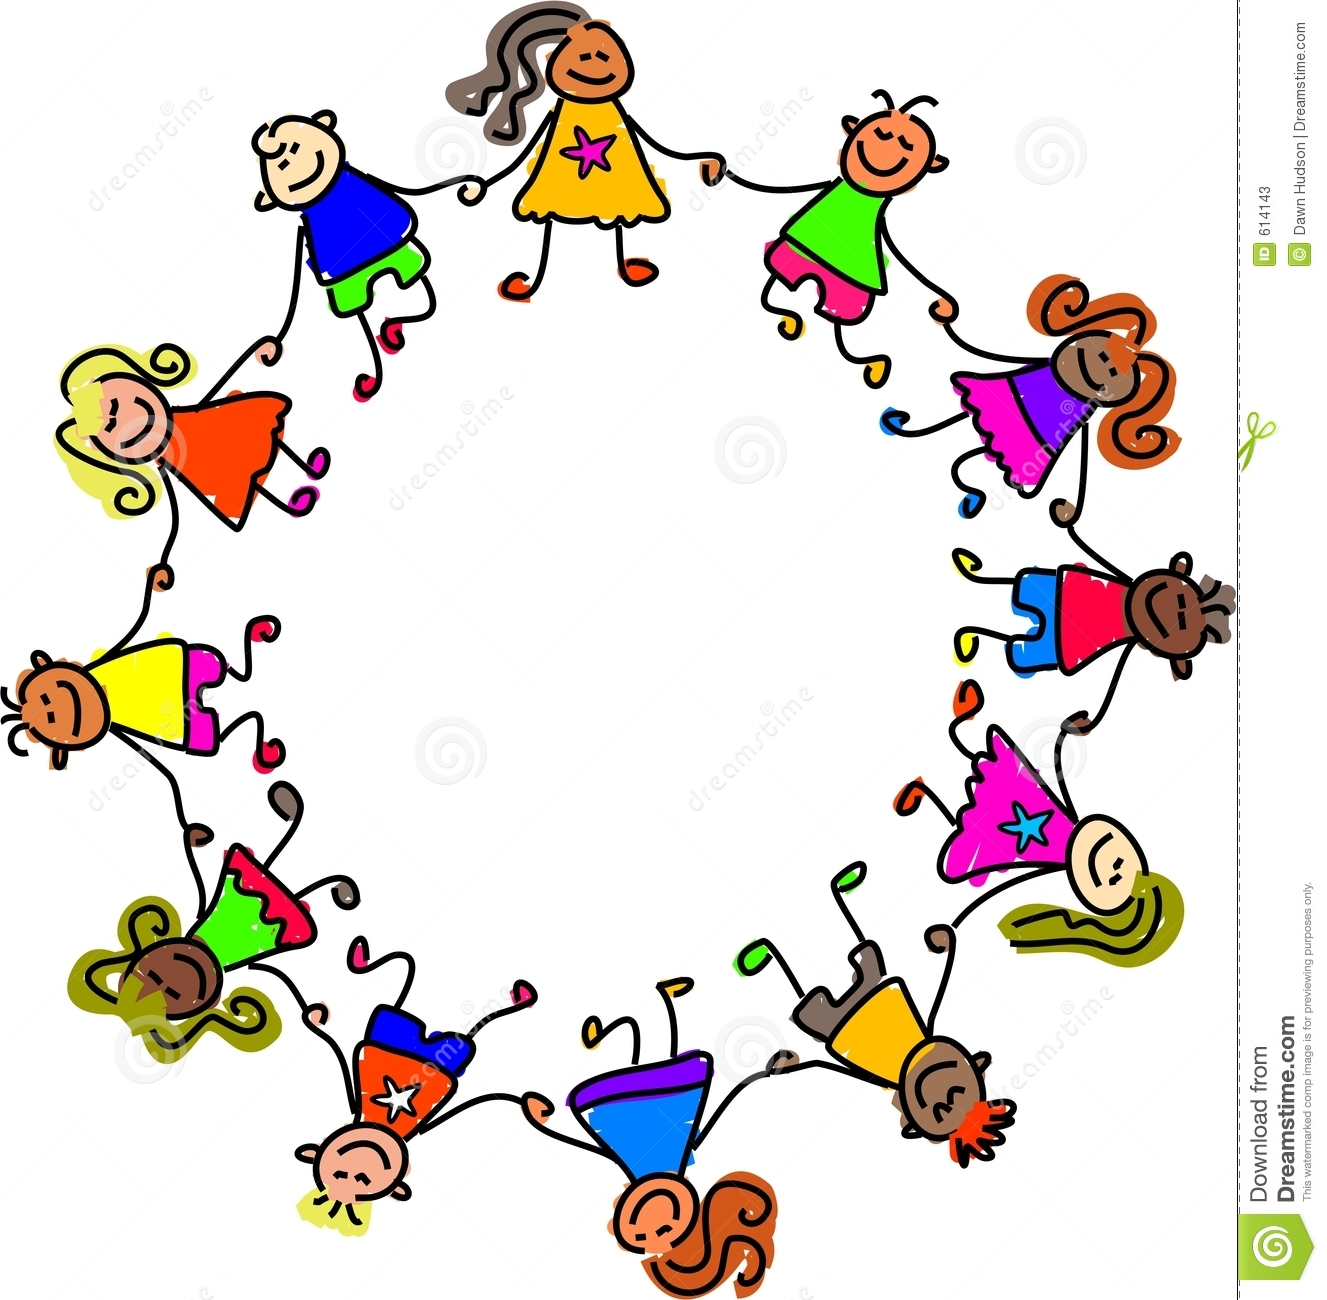 Children circle clipart jpg library download Free Kids Holding Hands, Download Free Clip Art, Free Clip Art on ... jpg library download